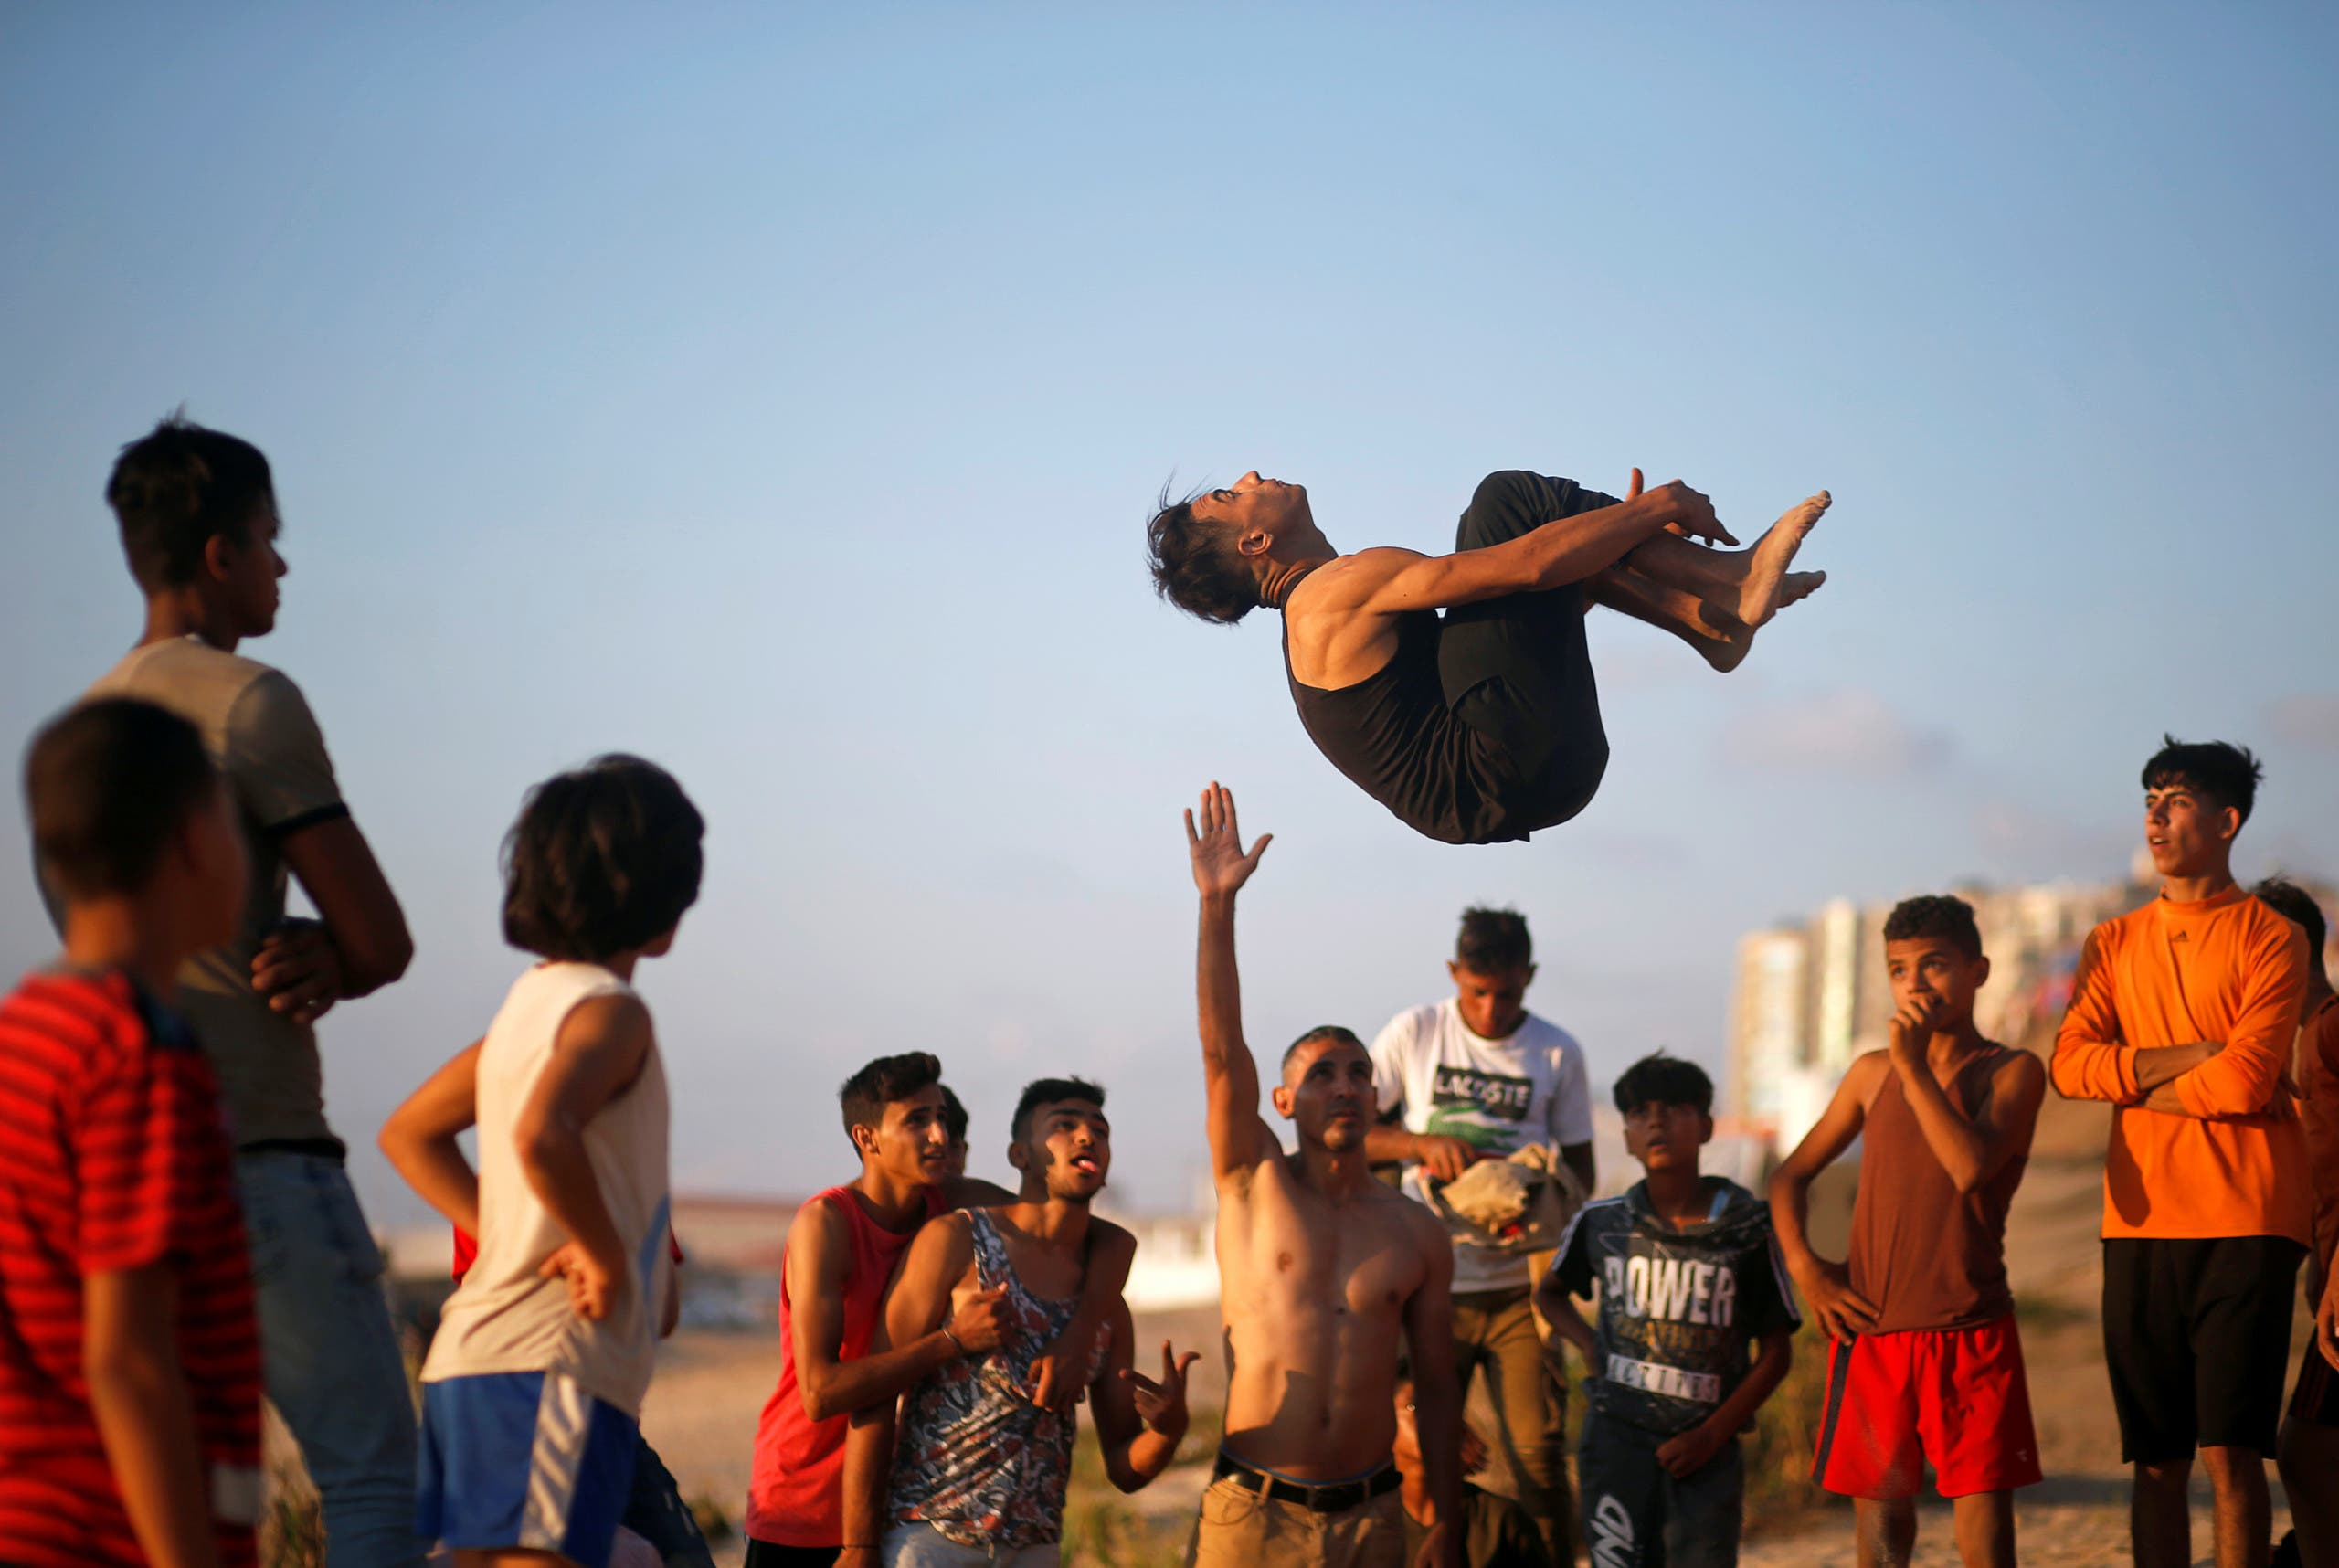 A Palestinian youth demonstrates his parkour skills on a beach as the coronavirus disease (COVID-19) restrictions ease in Gaza City. (Reuters)